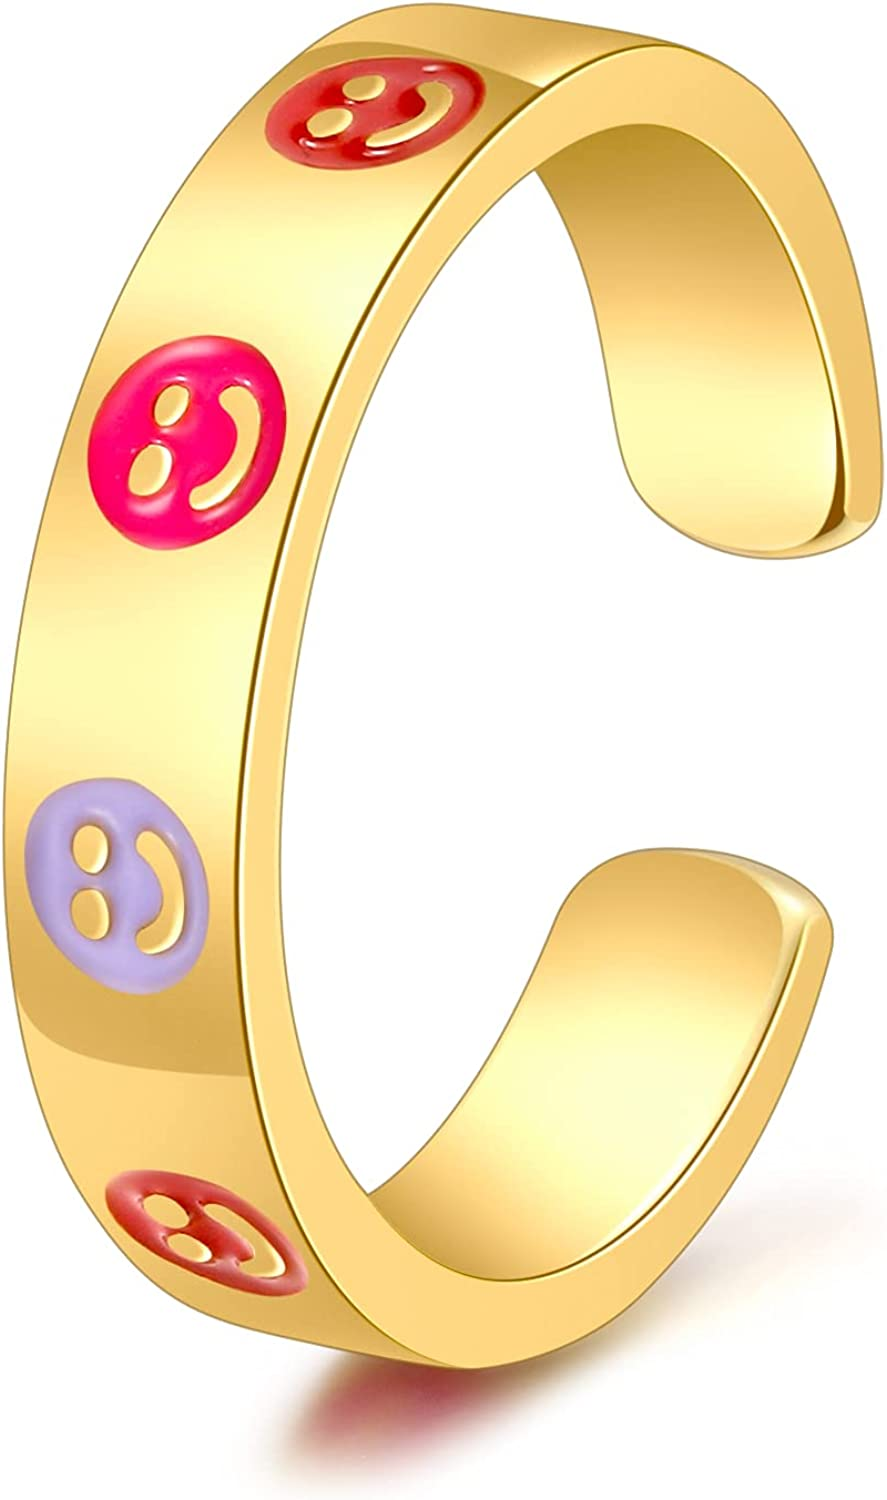 Smiley Face Ring For Women,Y2k Rings Colorful Promise Cute Best Friend Gold Rings For Teen Girls Adjustable Trendy Dainty Funky Gifts Aesthetic Simple Finger Enamel Jewelry